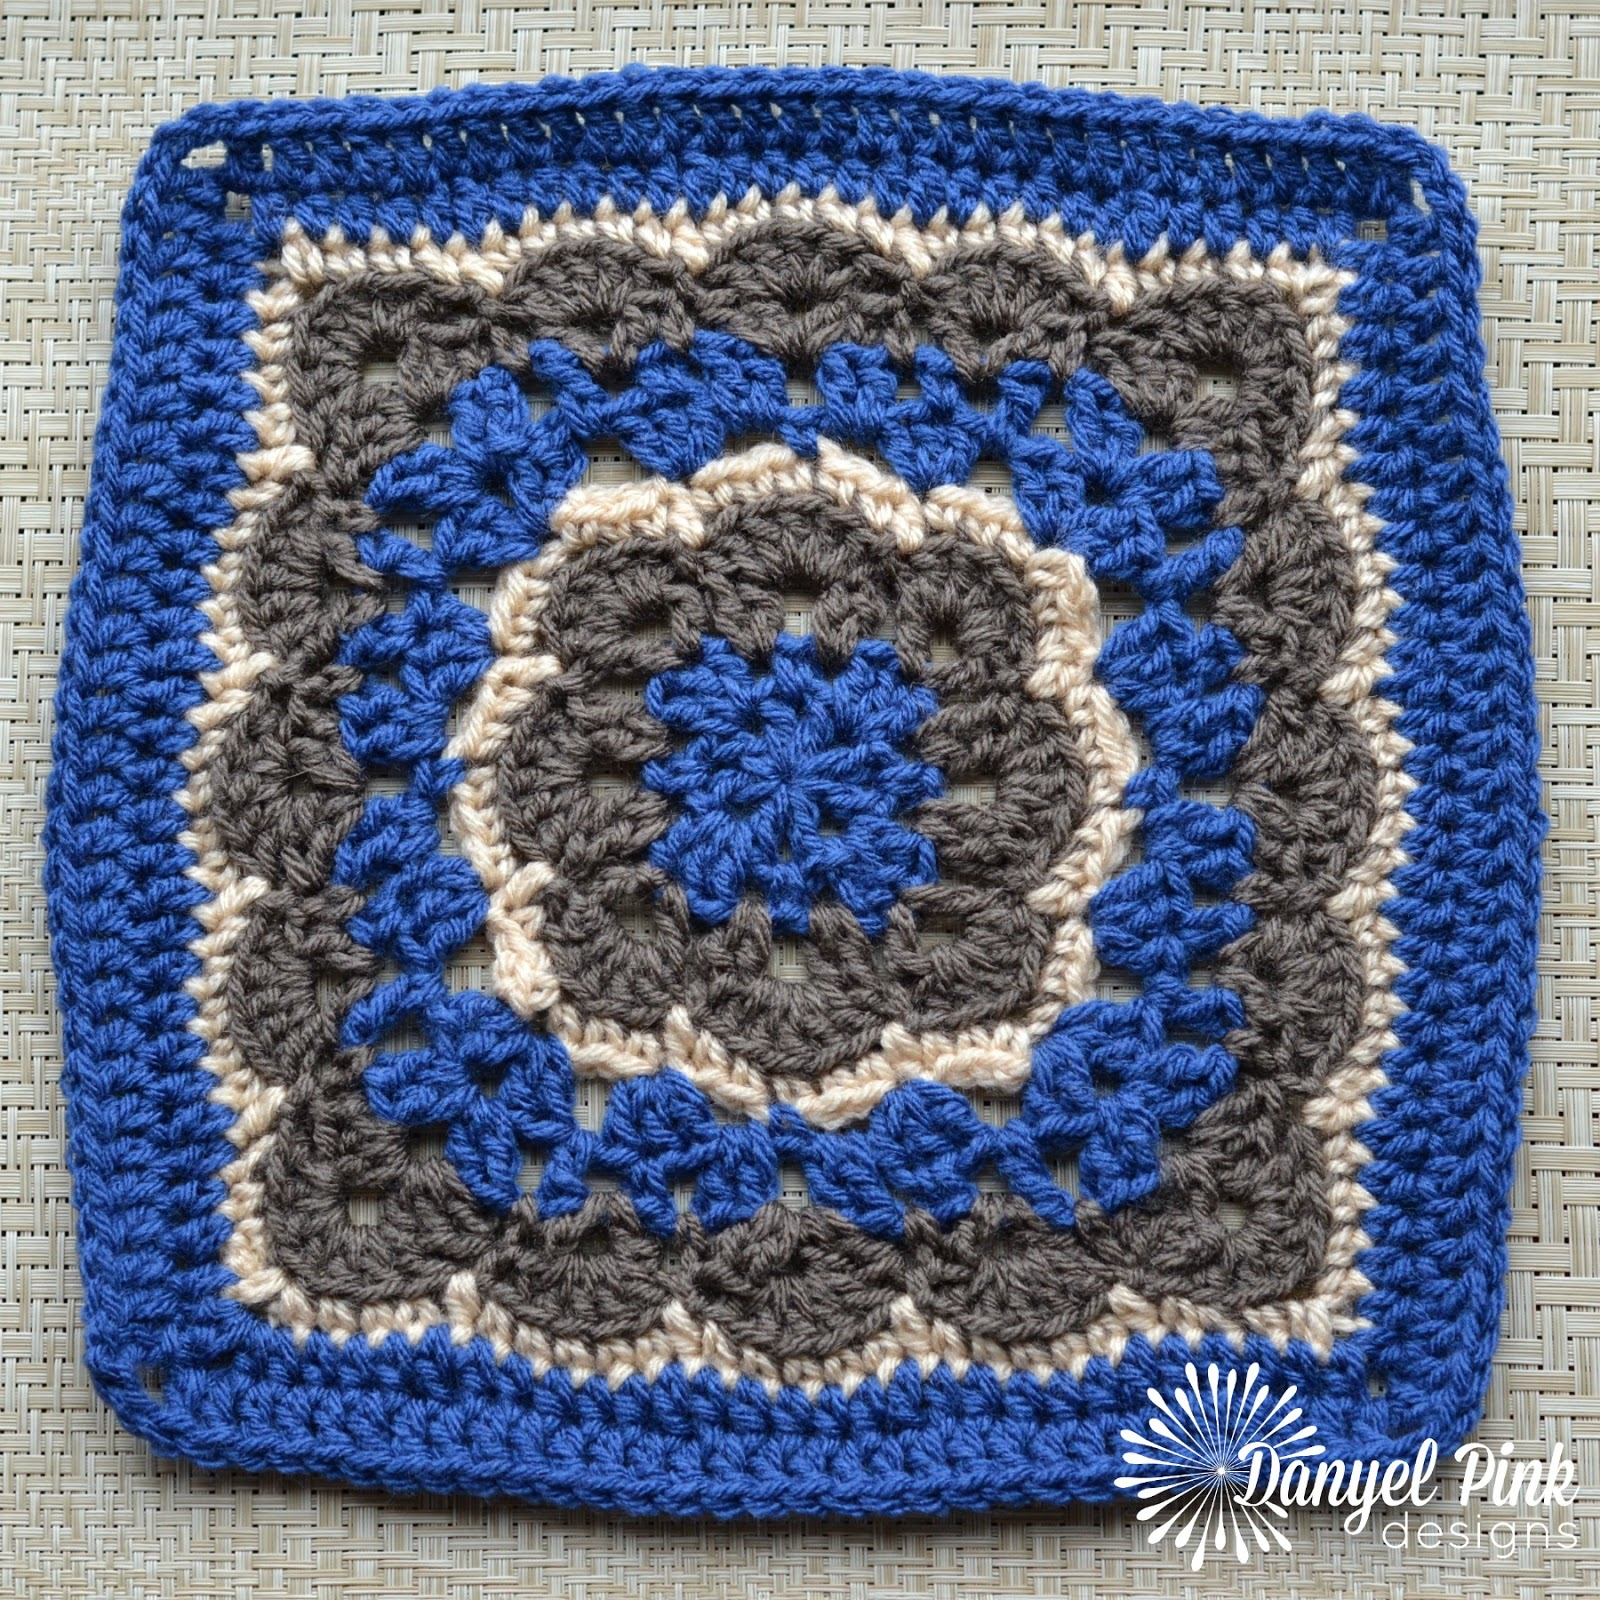 Danyel Pink Designs: CROCHET PATTERN - Winter Bloom Afghan Square